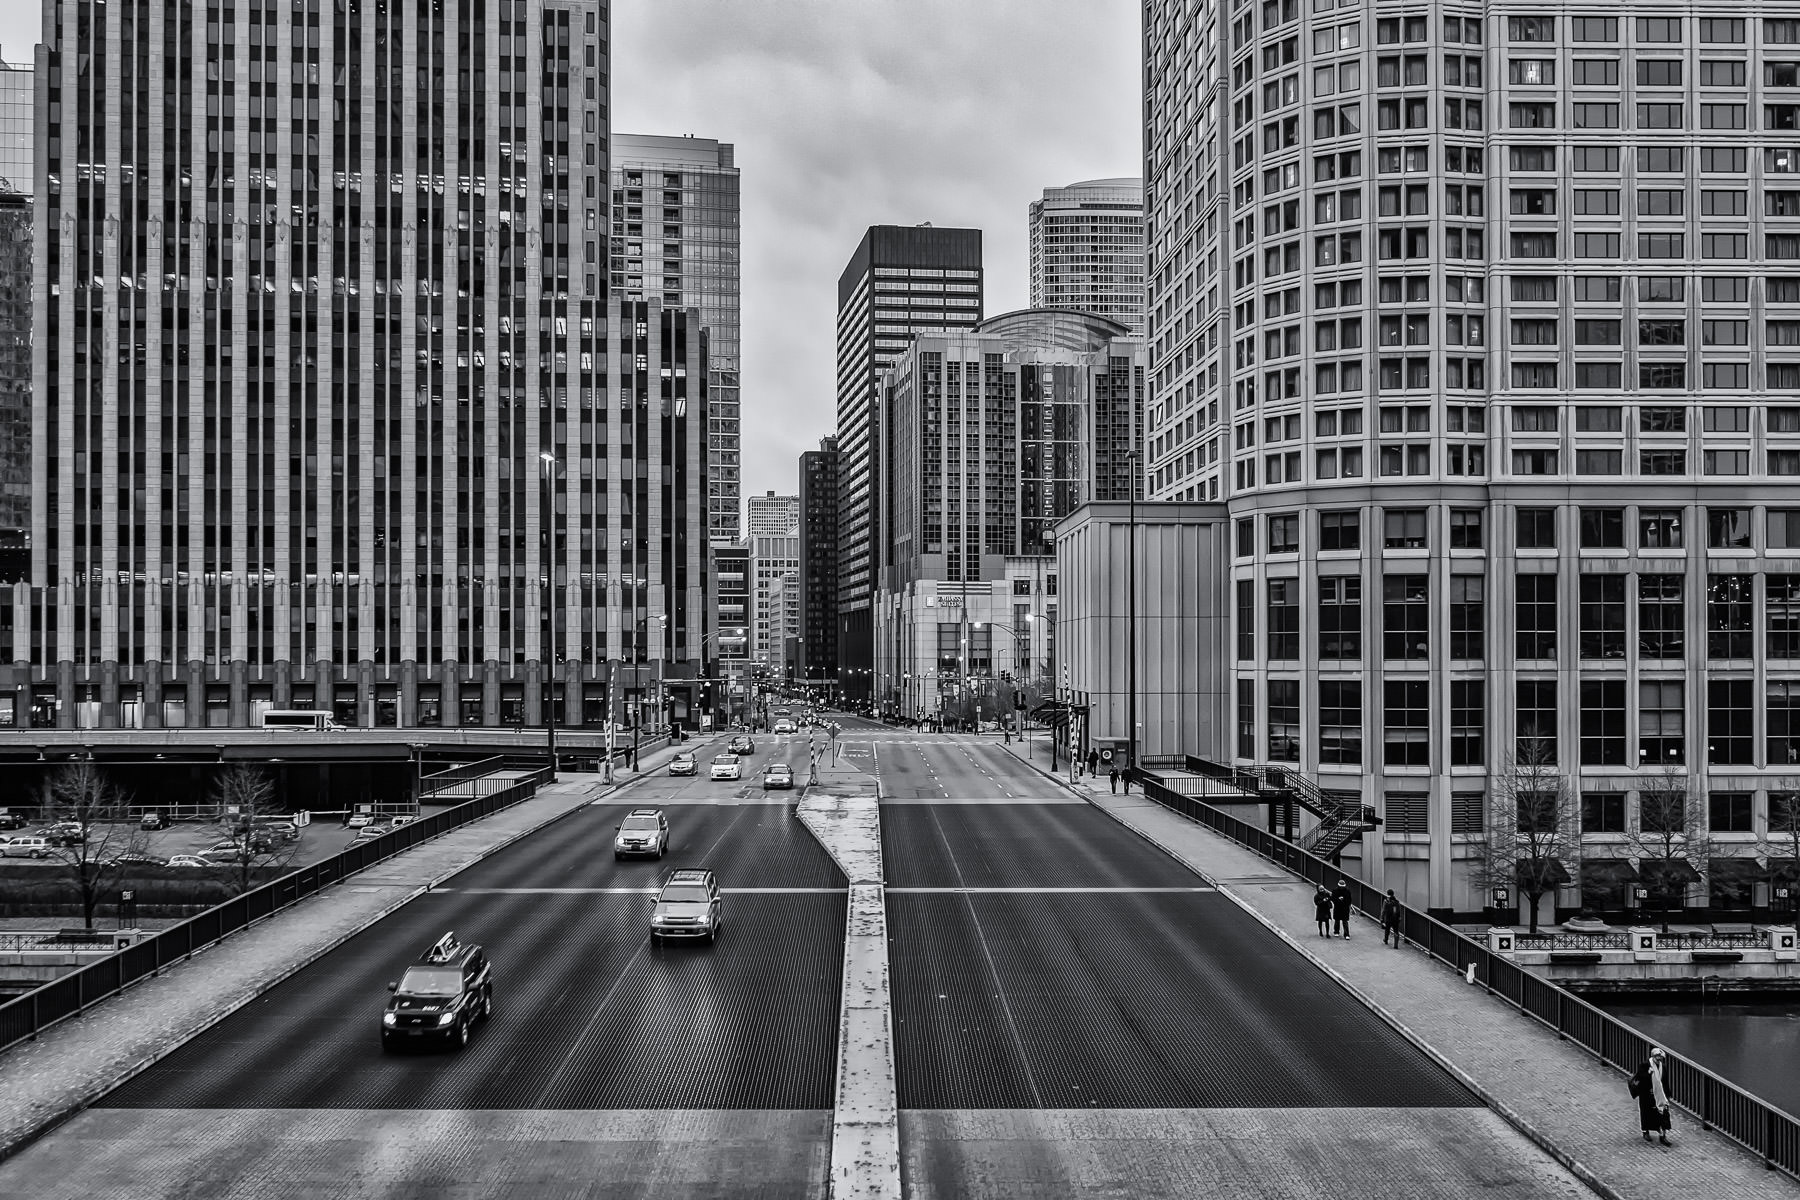 Chicago's Columbus Drive as seen from Upper Wacker Drive as it crosses the Chicago River.